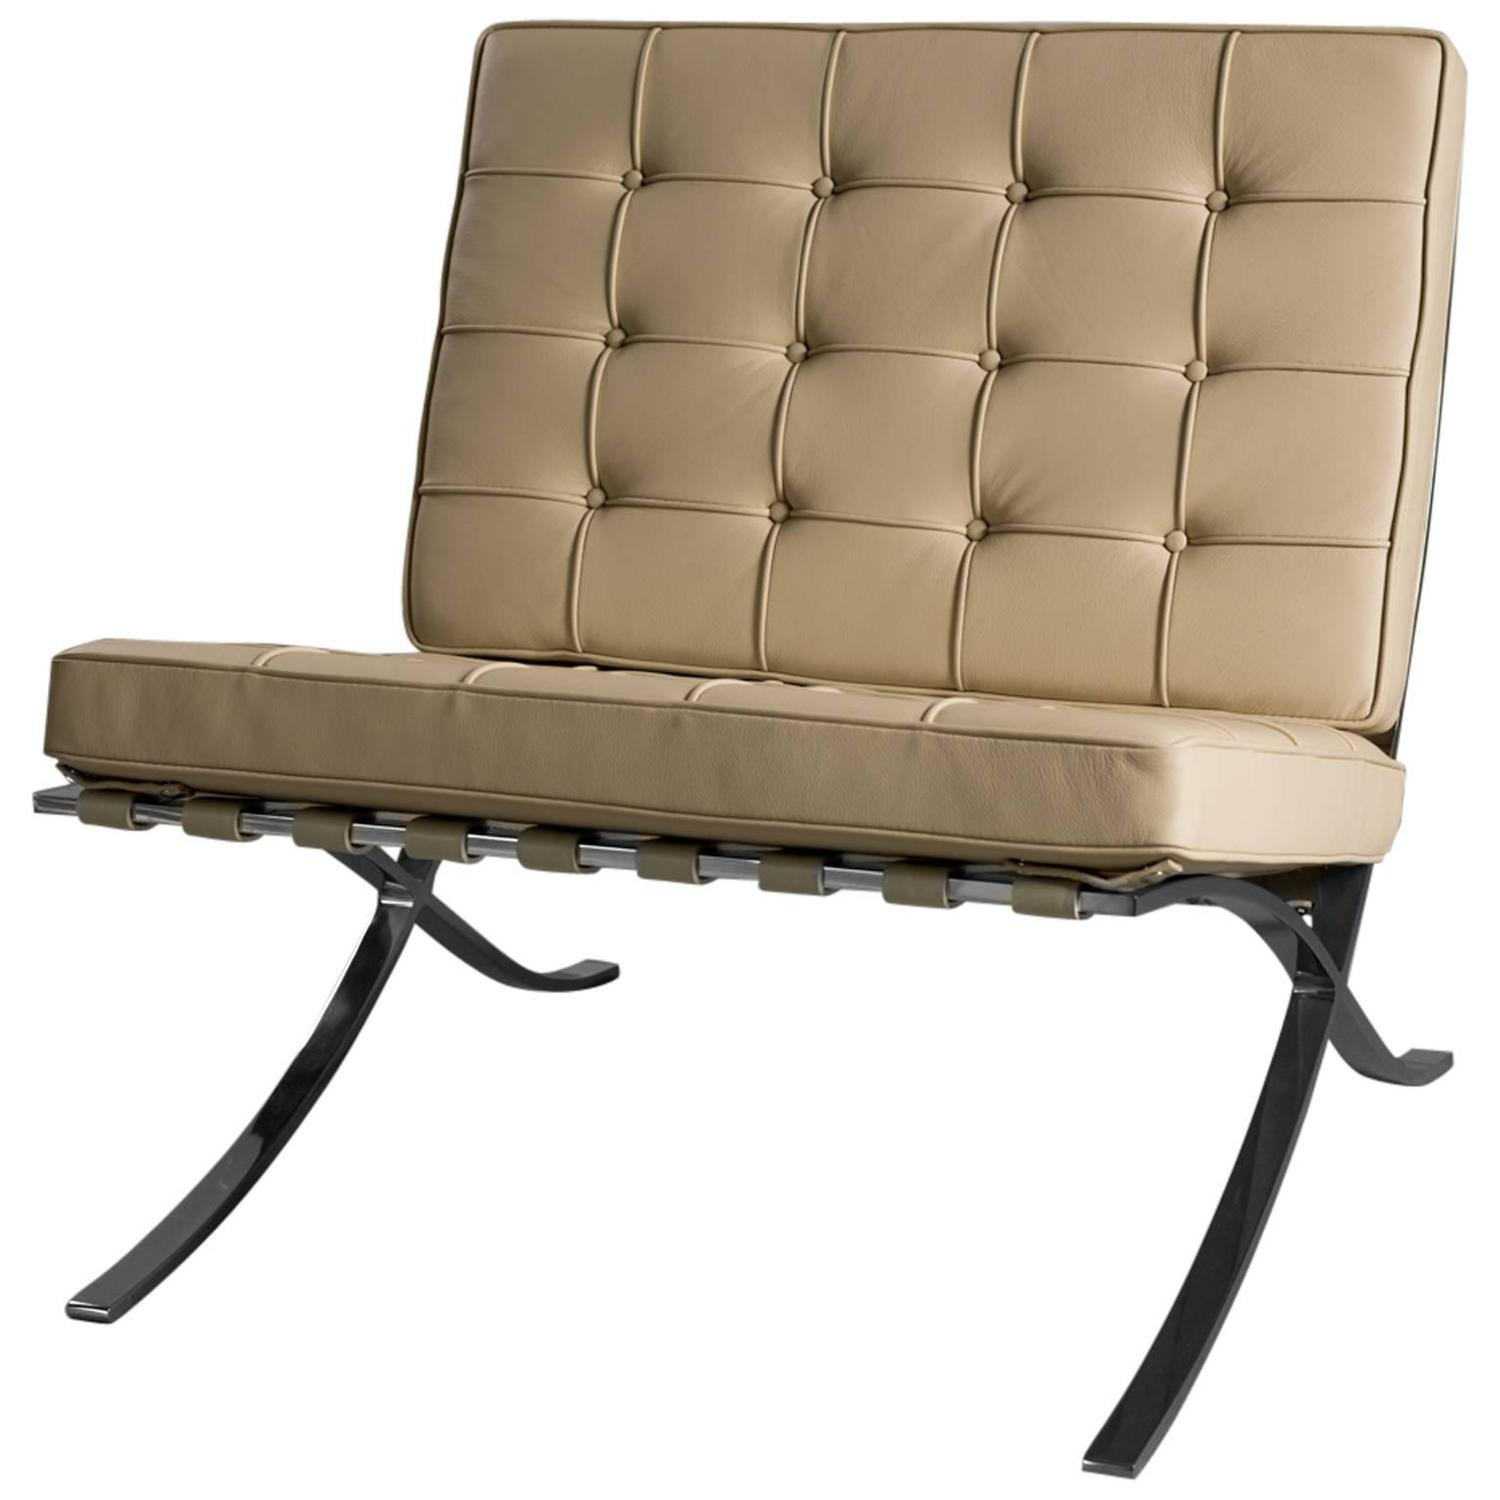 ludwig mies van der rohe for knoll barcelona chair for sale at 1stdibs. Black Bedroom Furniture Sets. Home Design Ideas